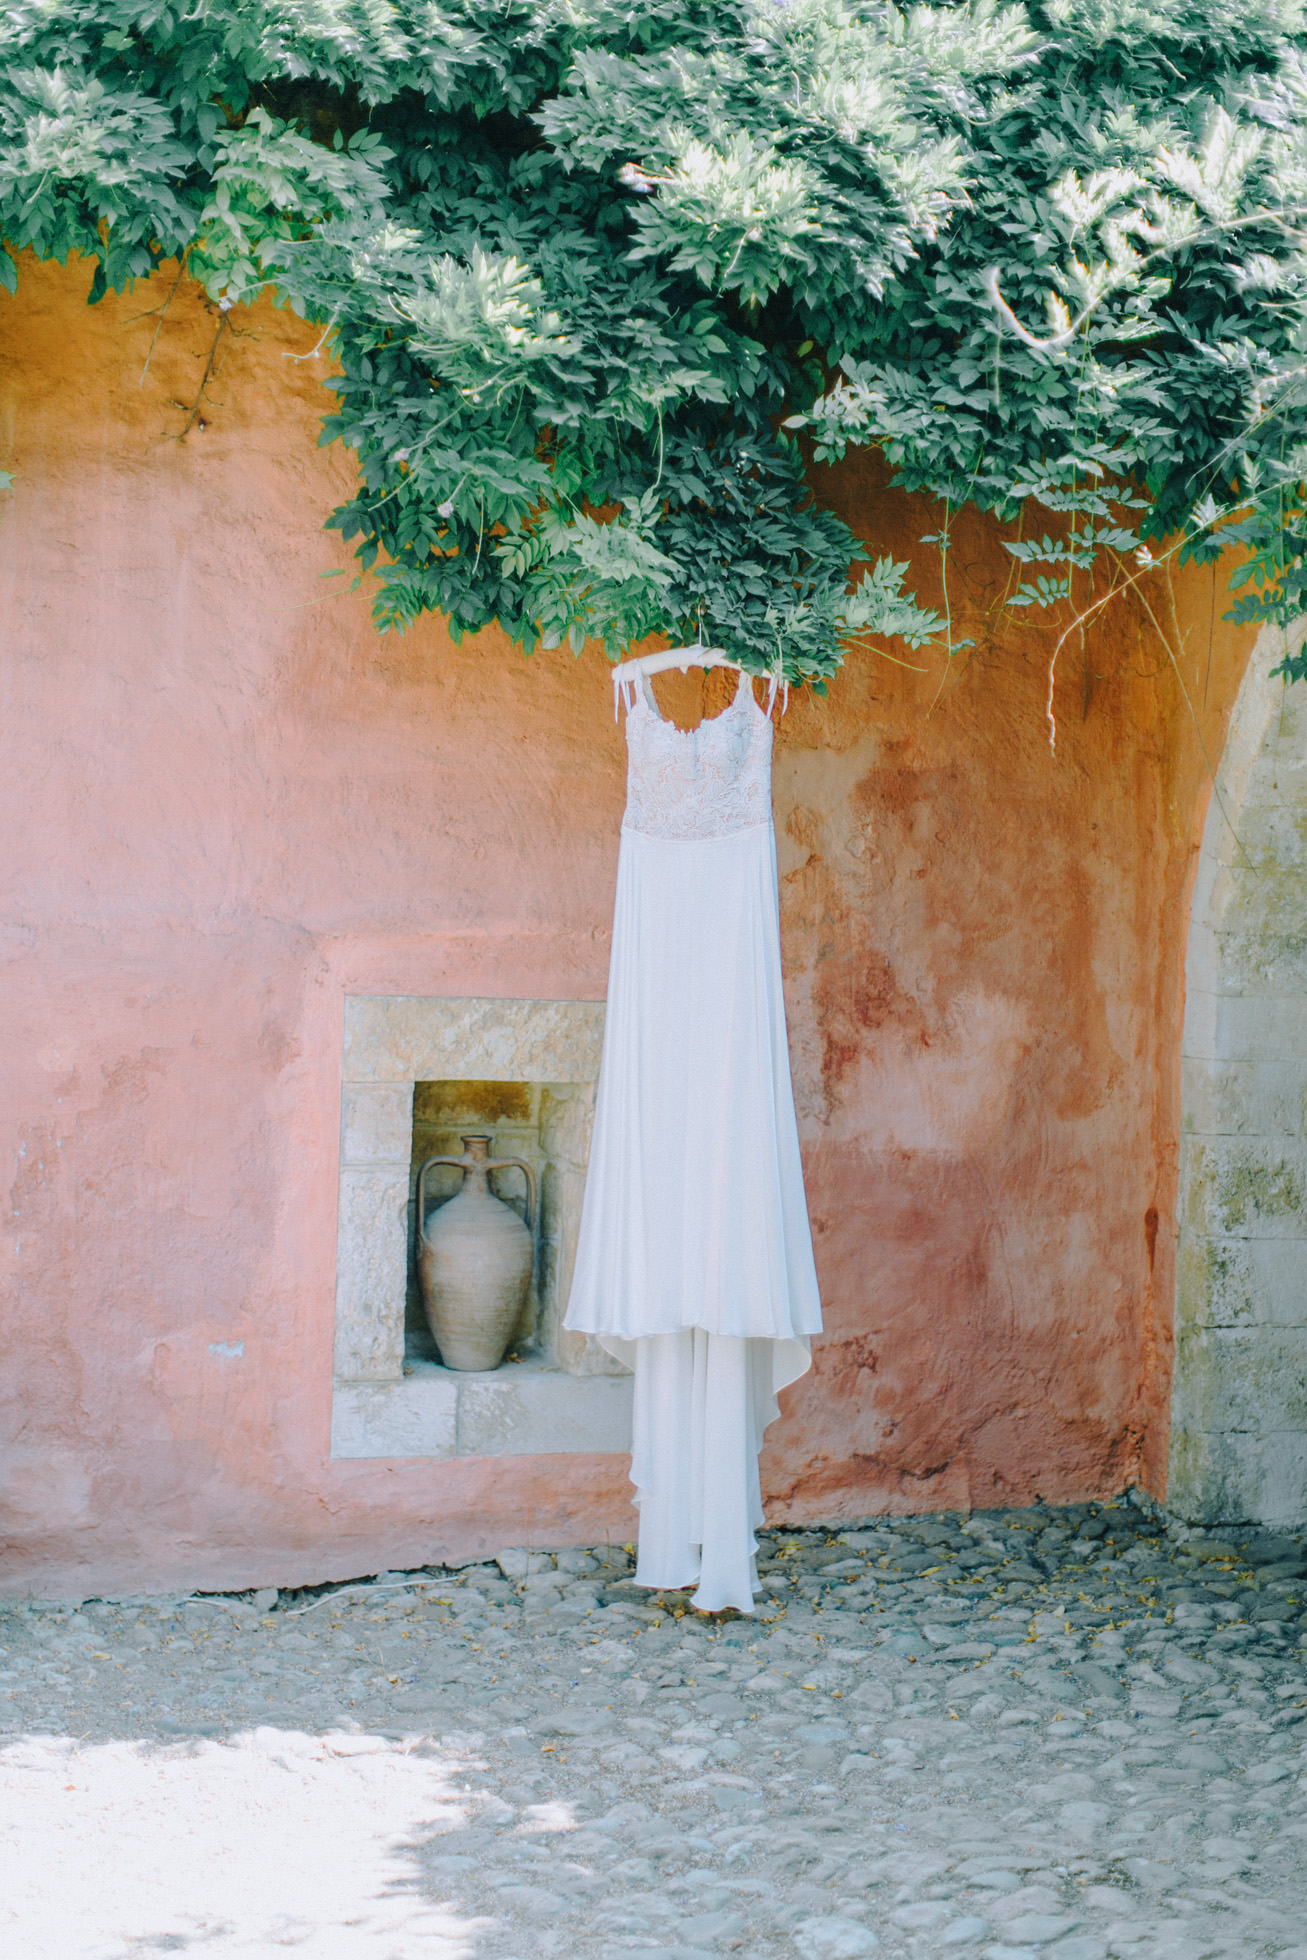 Elegant bridal detail photographed on a wedding day in Metohi Kindelis, Chania Crete.